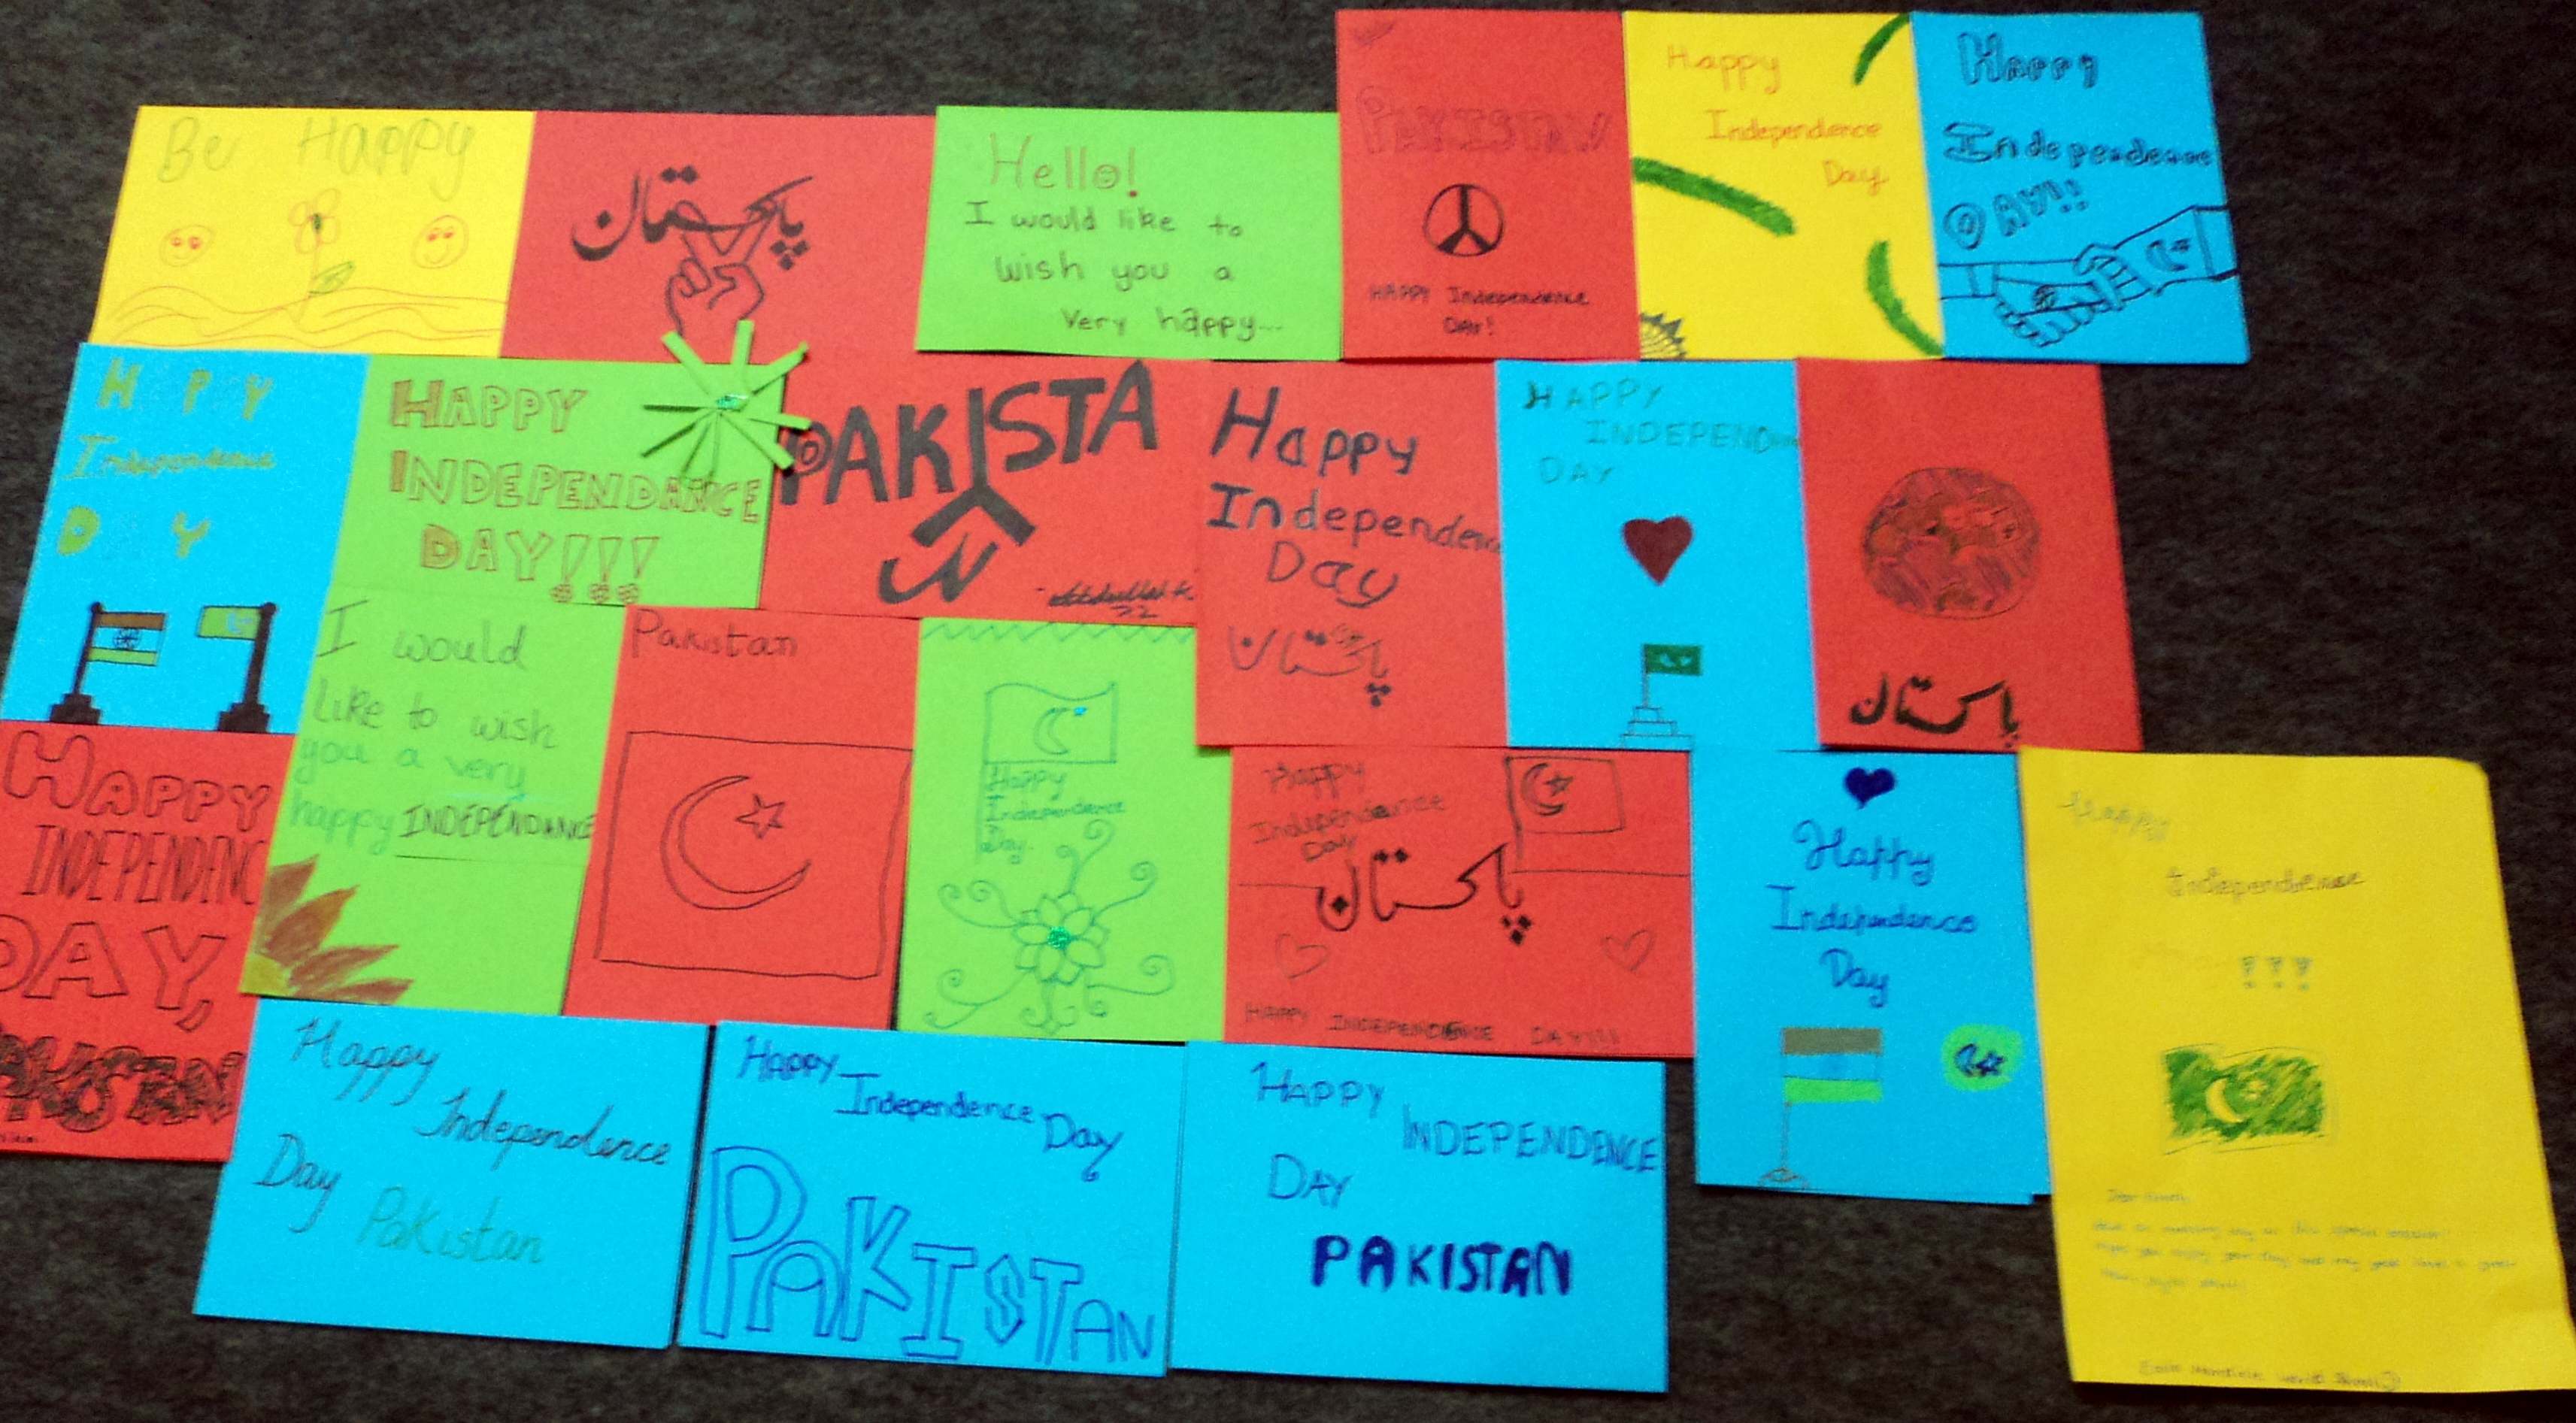 Greeting card exchange between schools aaghaz e dosti ecole mondiale world school mumbai initiated a beautiful step towards friendship with having their 7th grade students to make cards for pakistanis wishing kristyandbryce Gallery